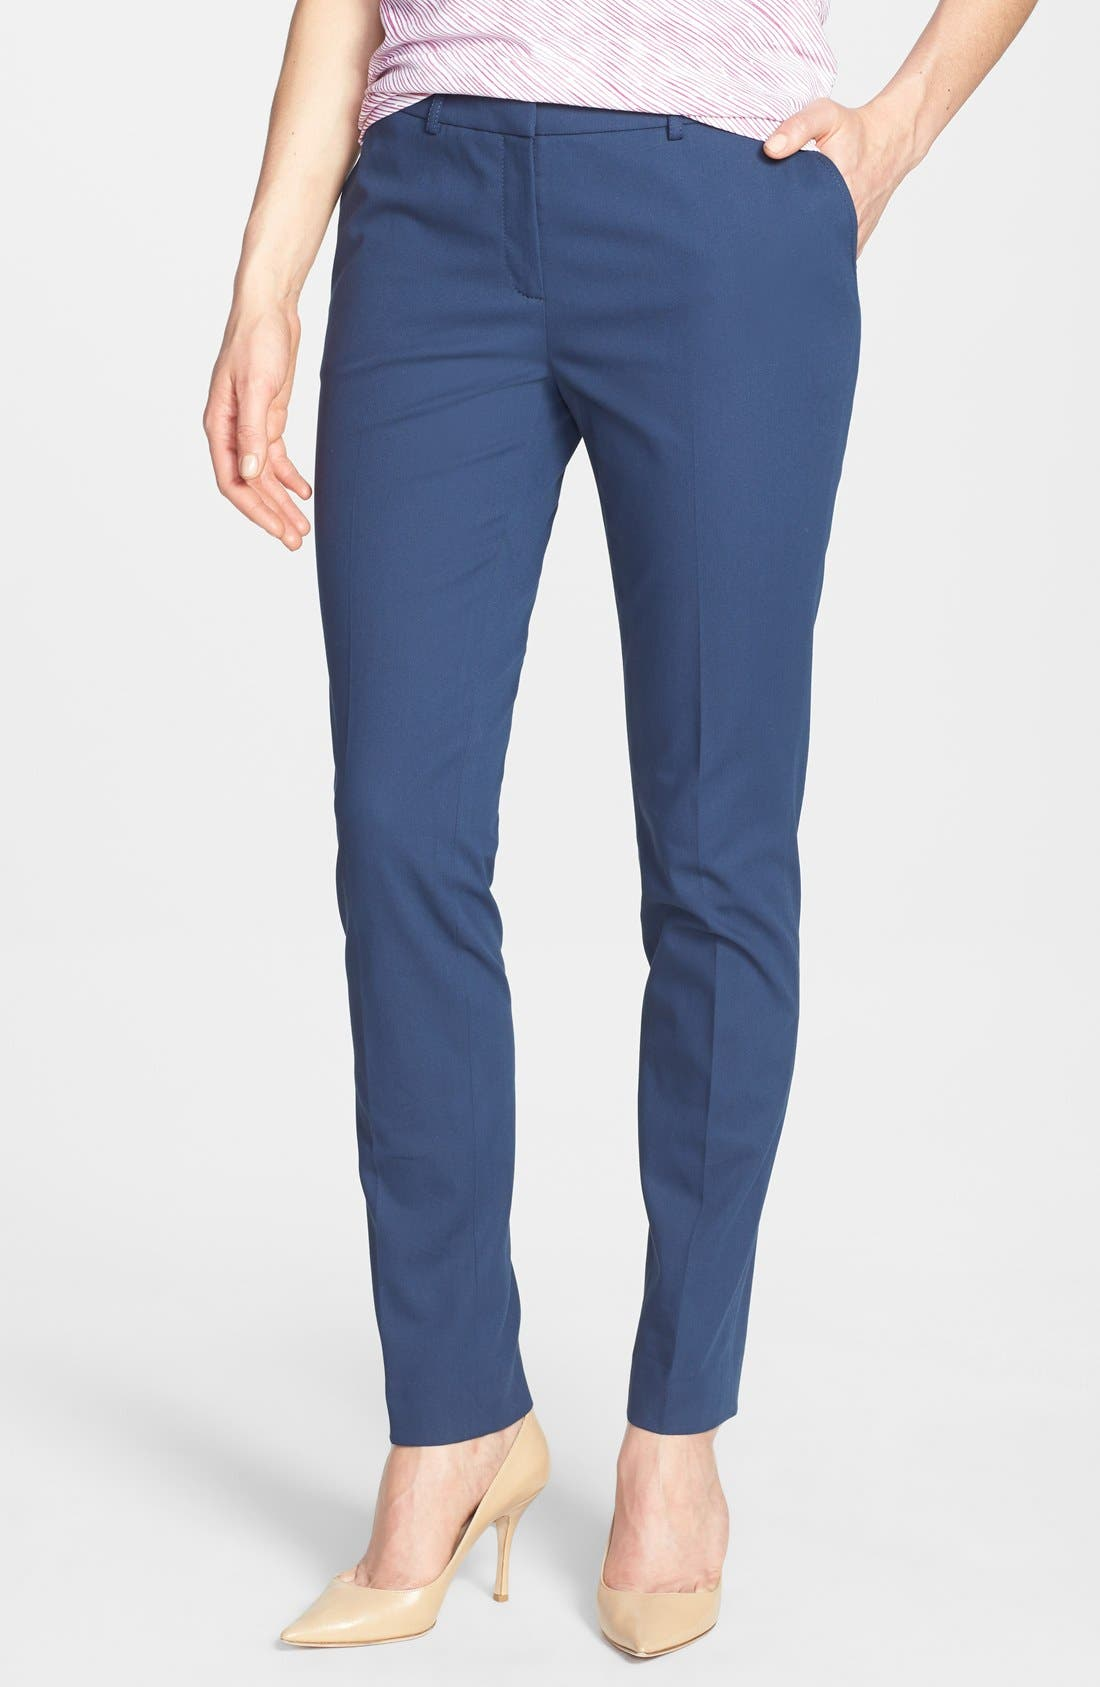 Main Image - Lafayette 148 New York Polished Twill Skinny Ankle Pant